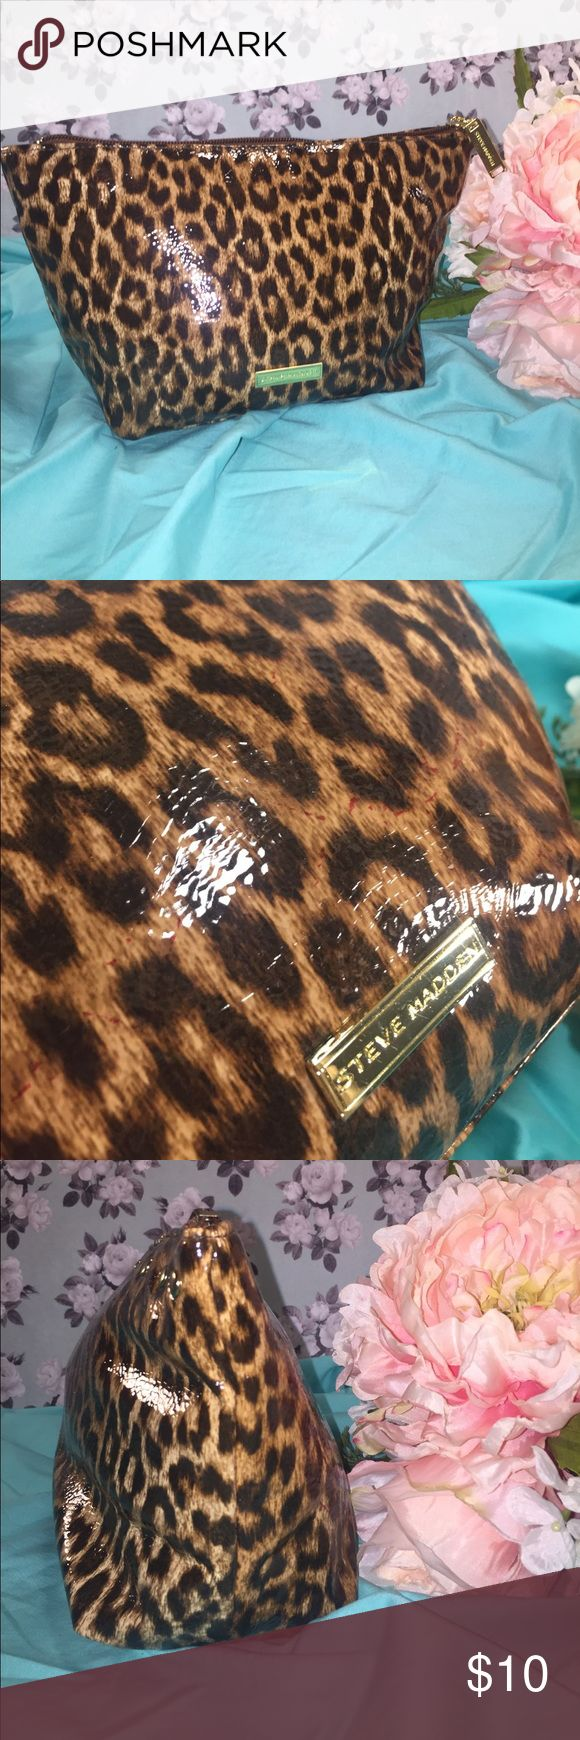 "STEVE MADDEN Cheetah Travel Bag STEVE MADDEN Cheetah Travel Bag in black, brown, and tan with gold tone hardware, stud detailing, Steve Madden plaque and zipper pull, top zip closure, brown interior lining with one zip interior pocket. Excellent preowned condition. Measures 11 x 6.5 x 4"". Orig. $24.99 Steve Madden Bags Cosmetic Bags & Cases"